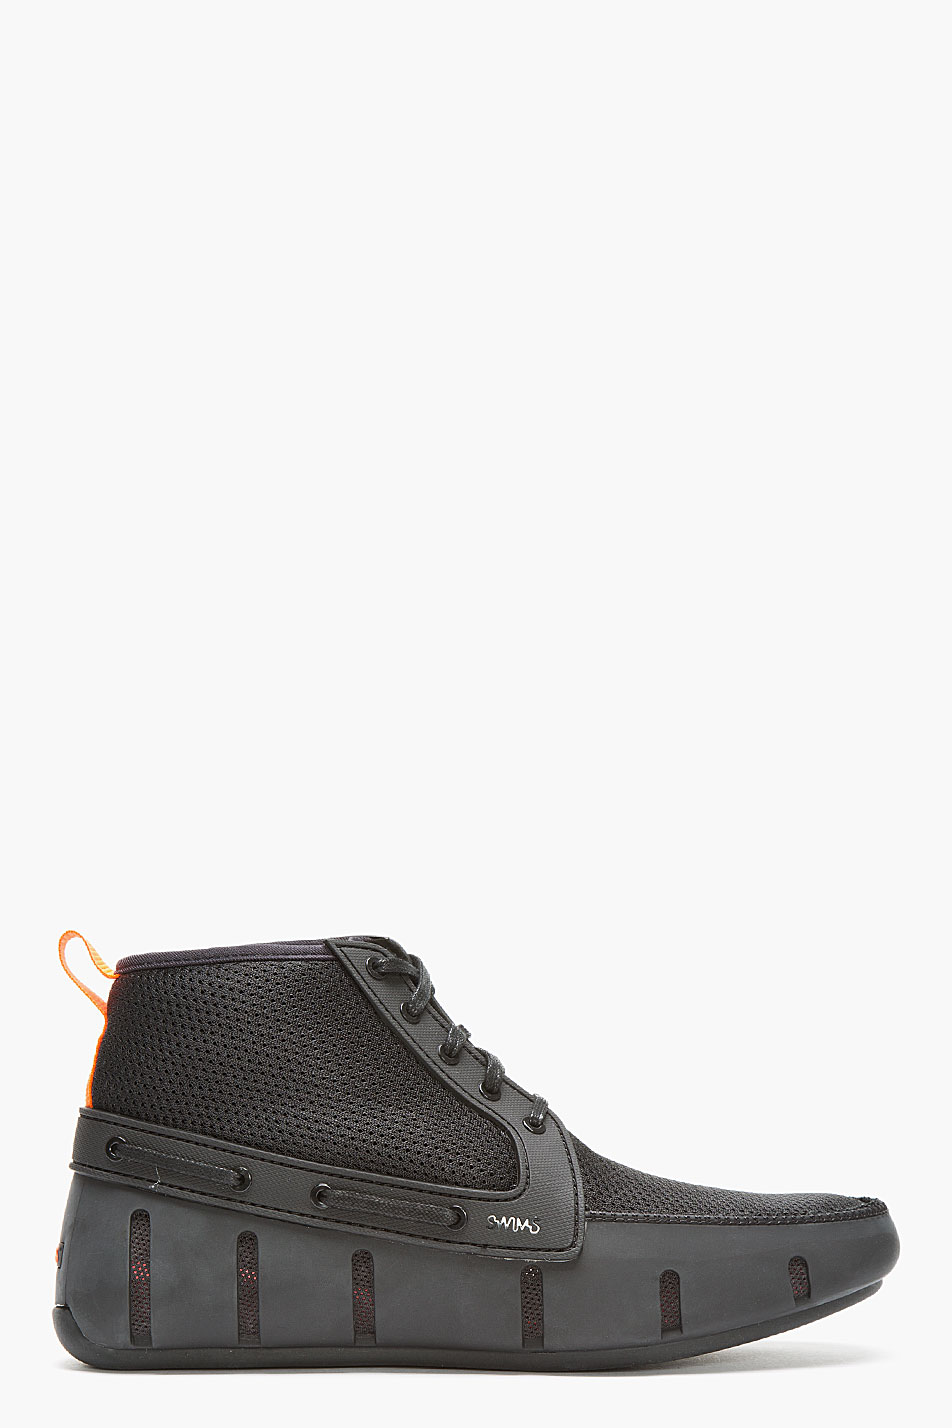 Swims Black Mesh High Top Sport Loafers For Men Lyst